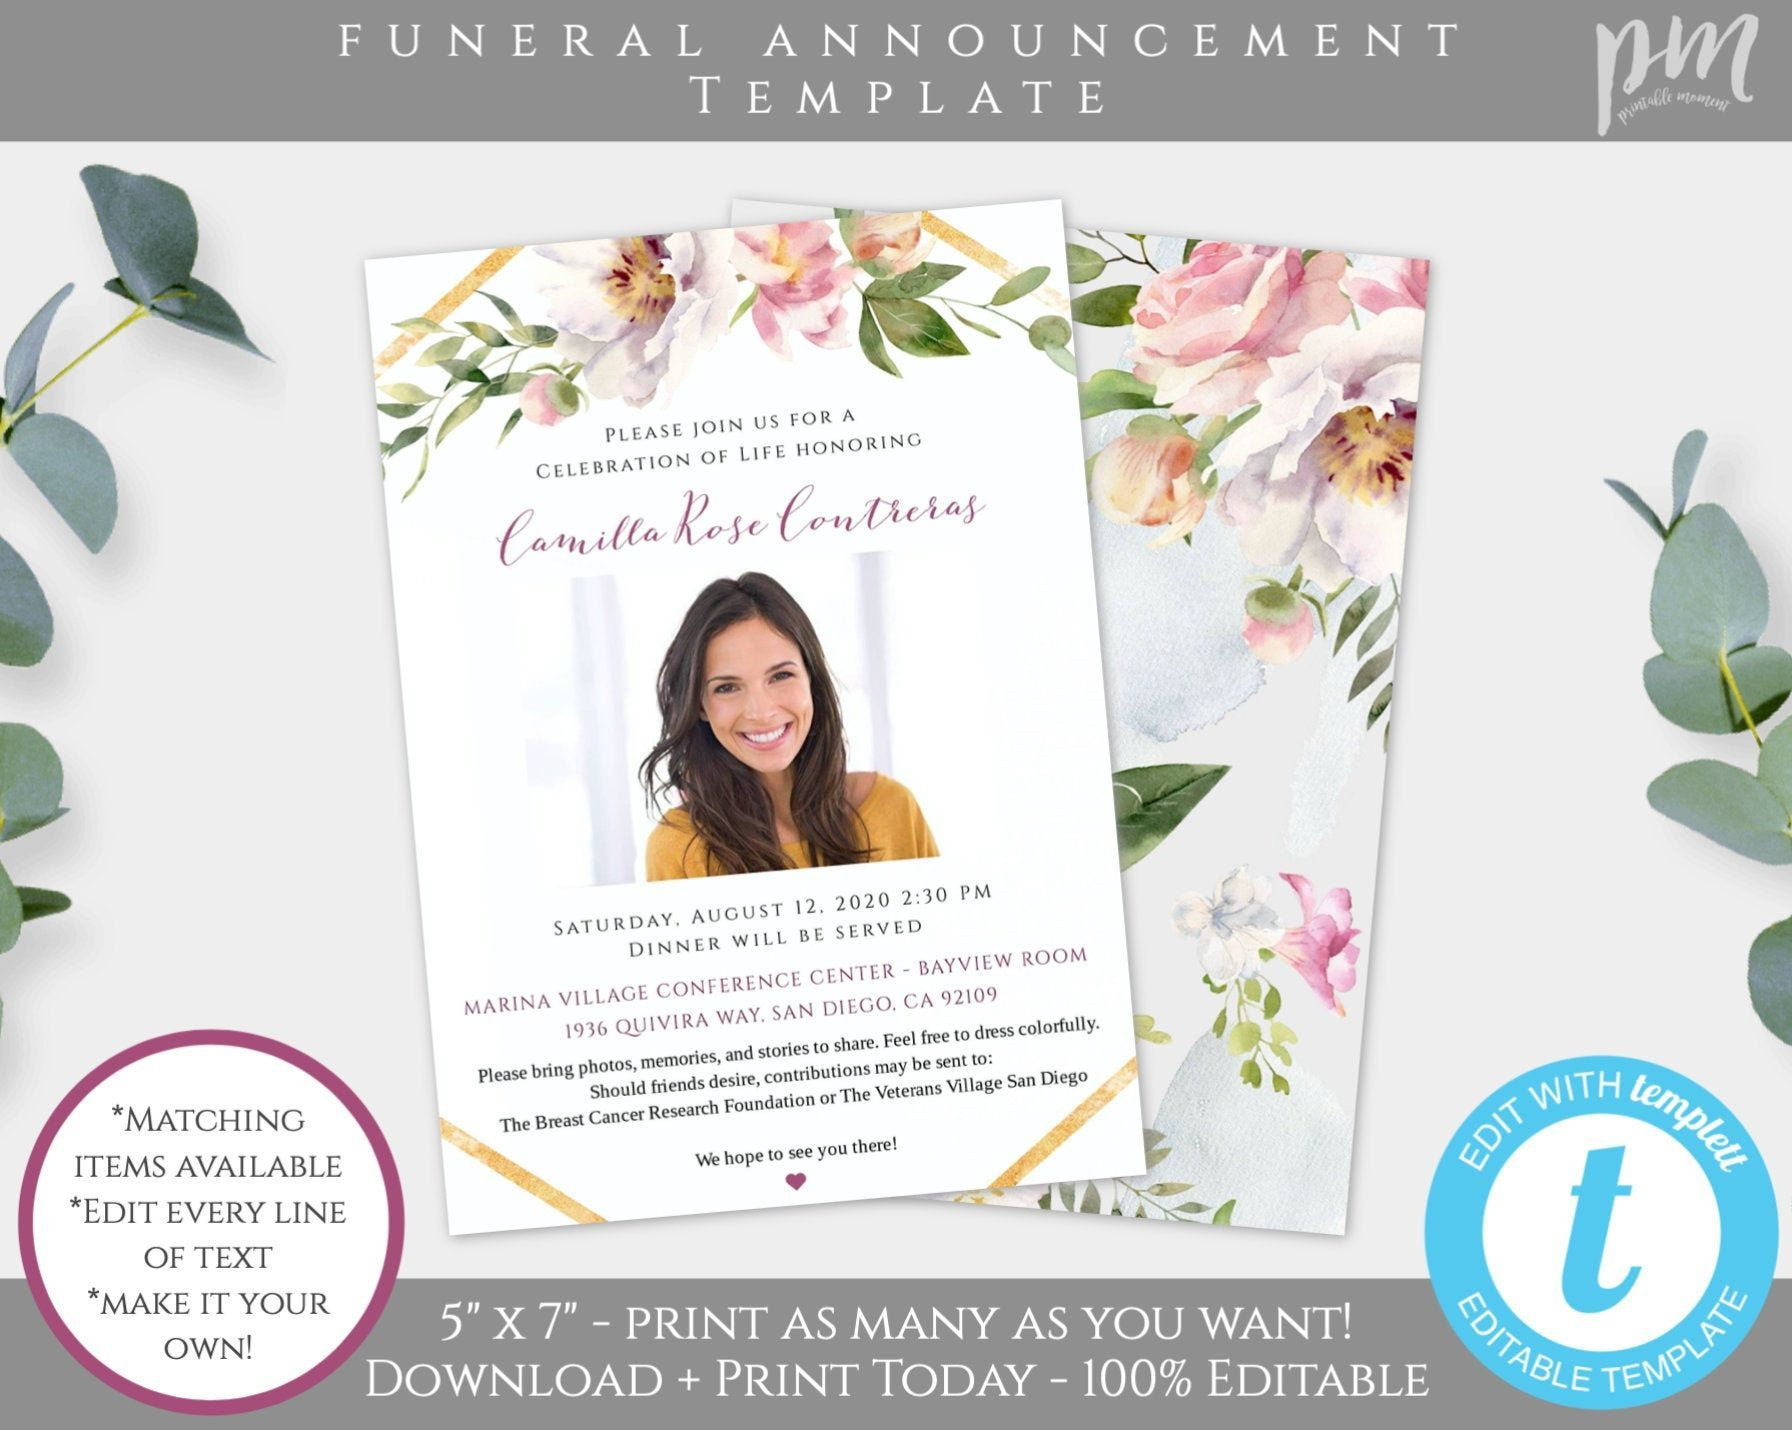 003 Unforgettable Celebration Of Life Template Free Download High Def  InvitationFull